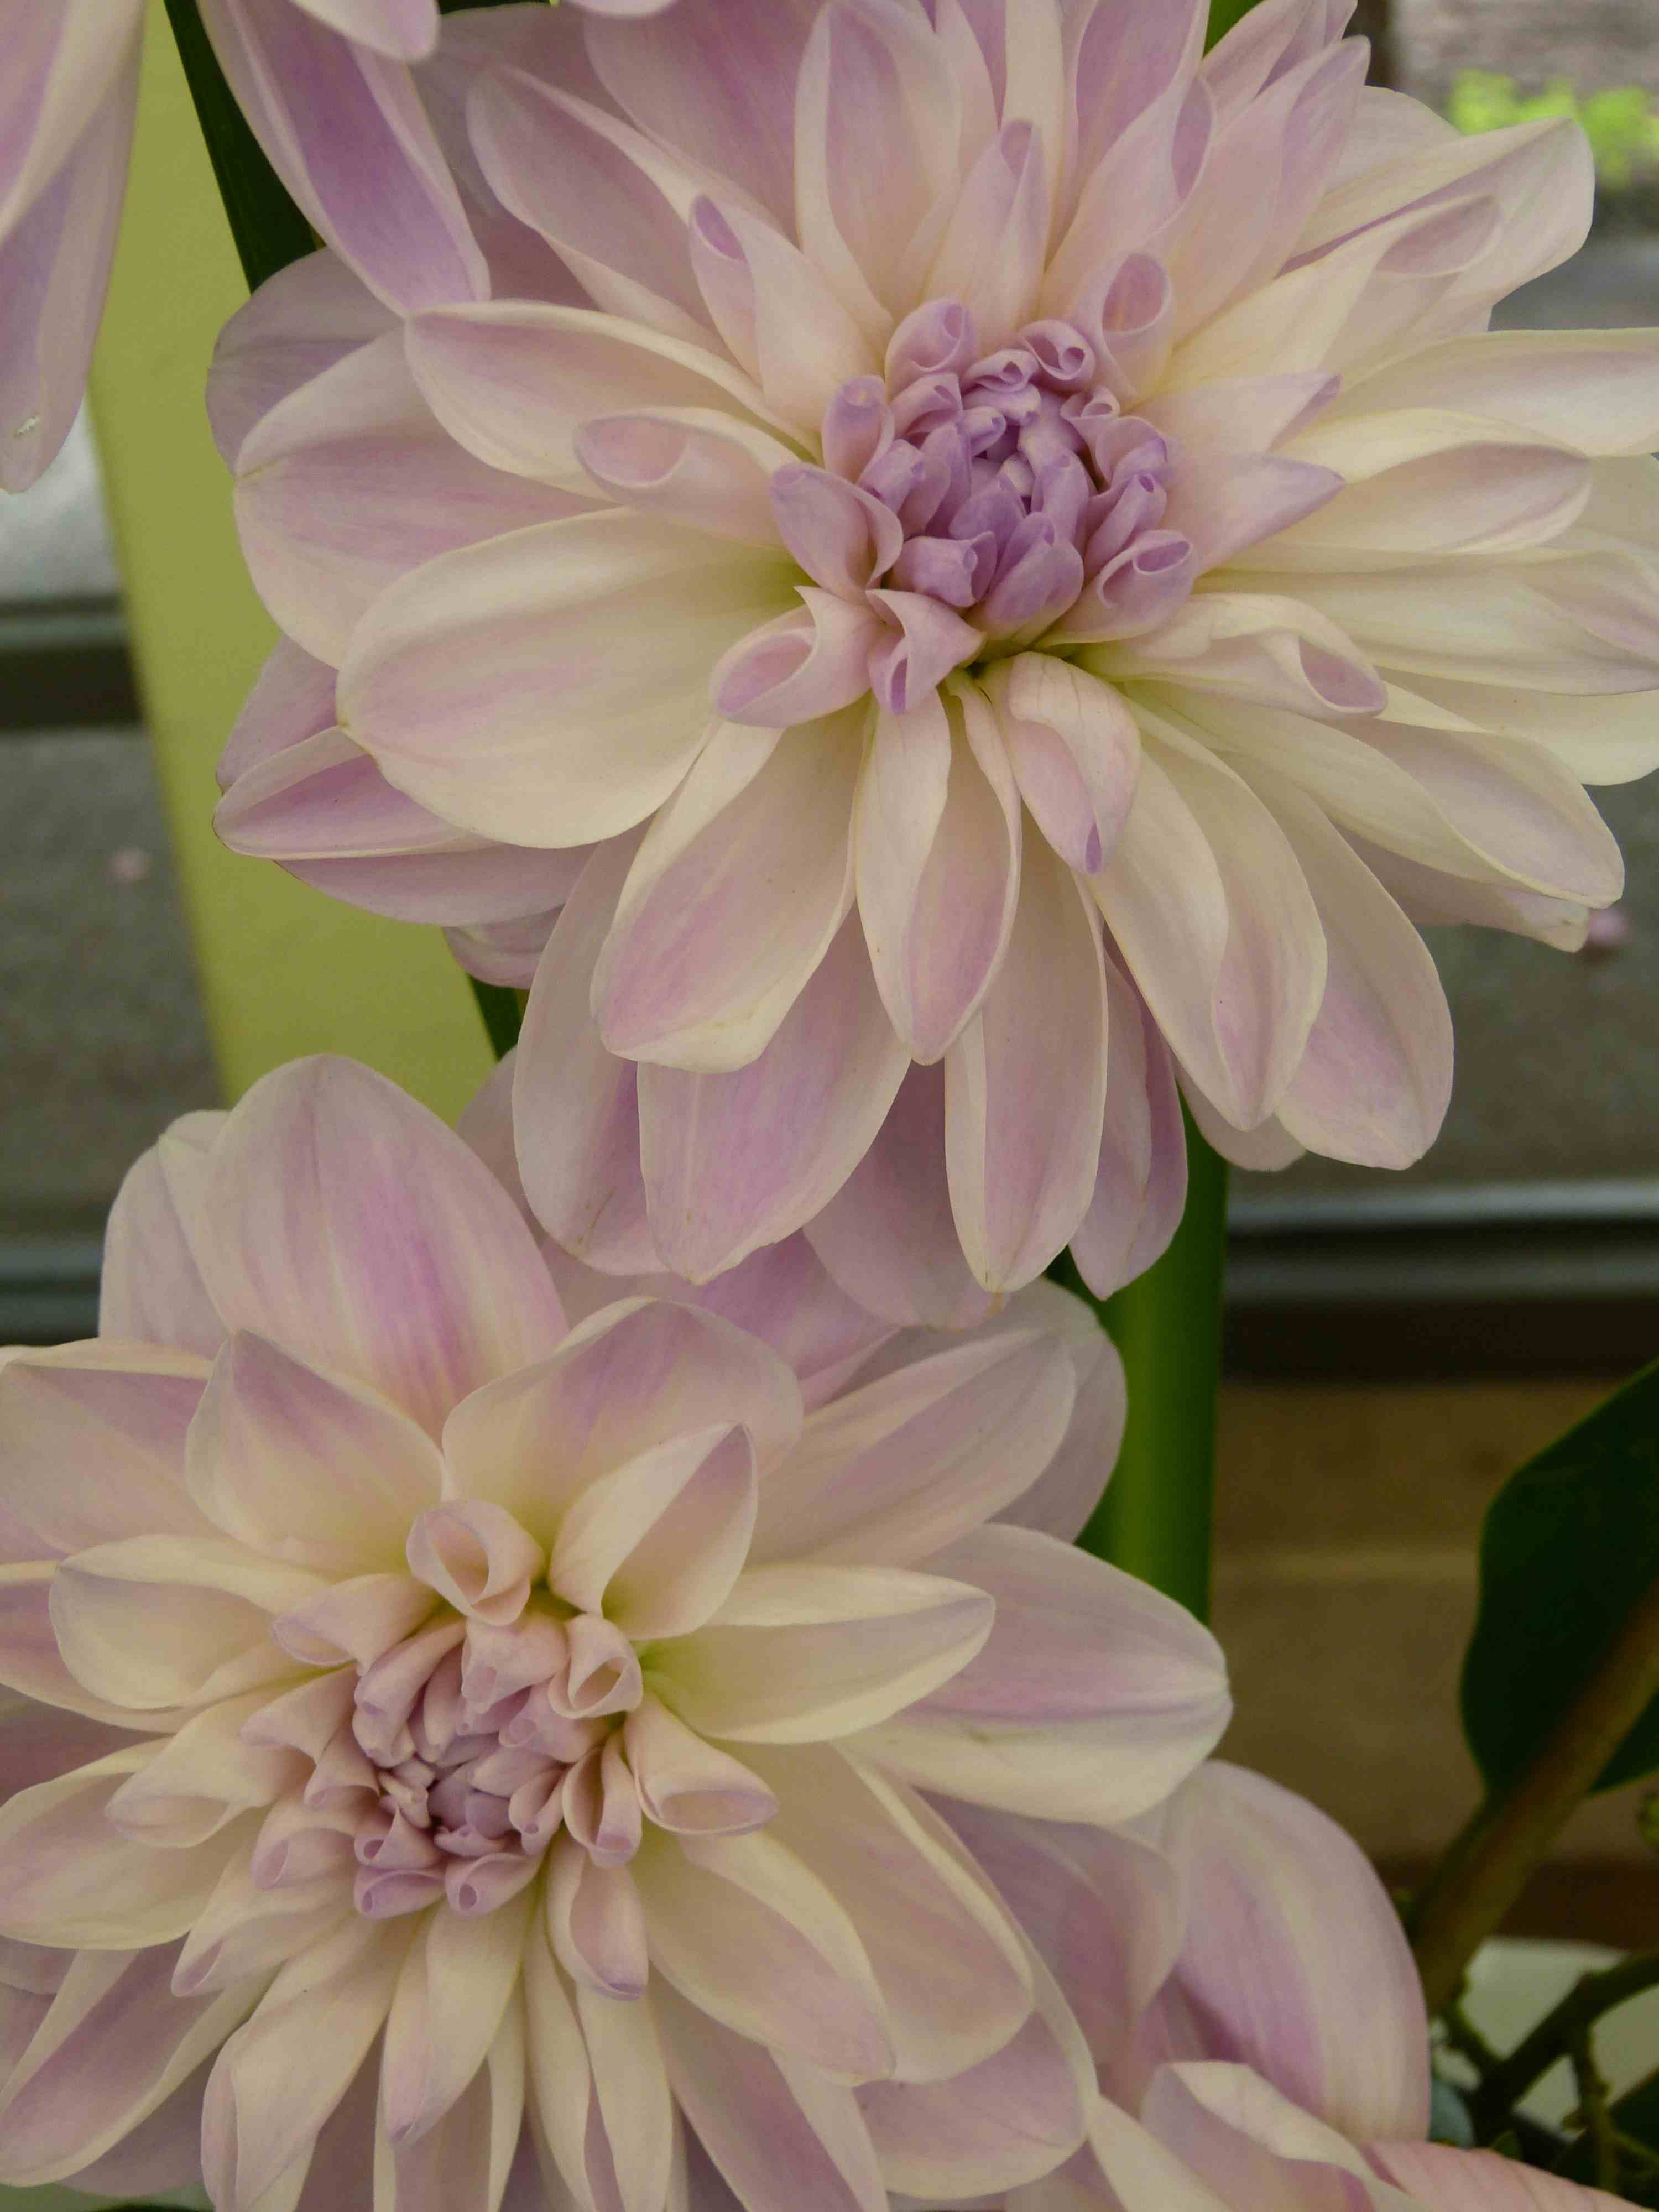 View slide show of Dahlias by Sarah Curtiss